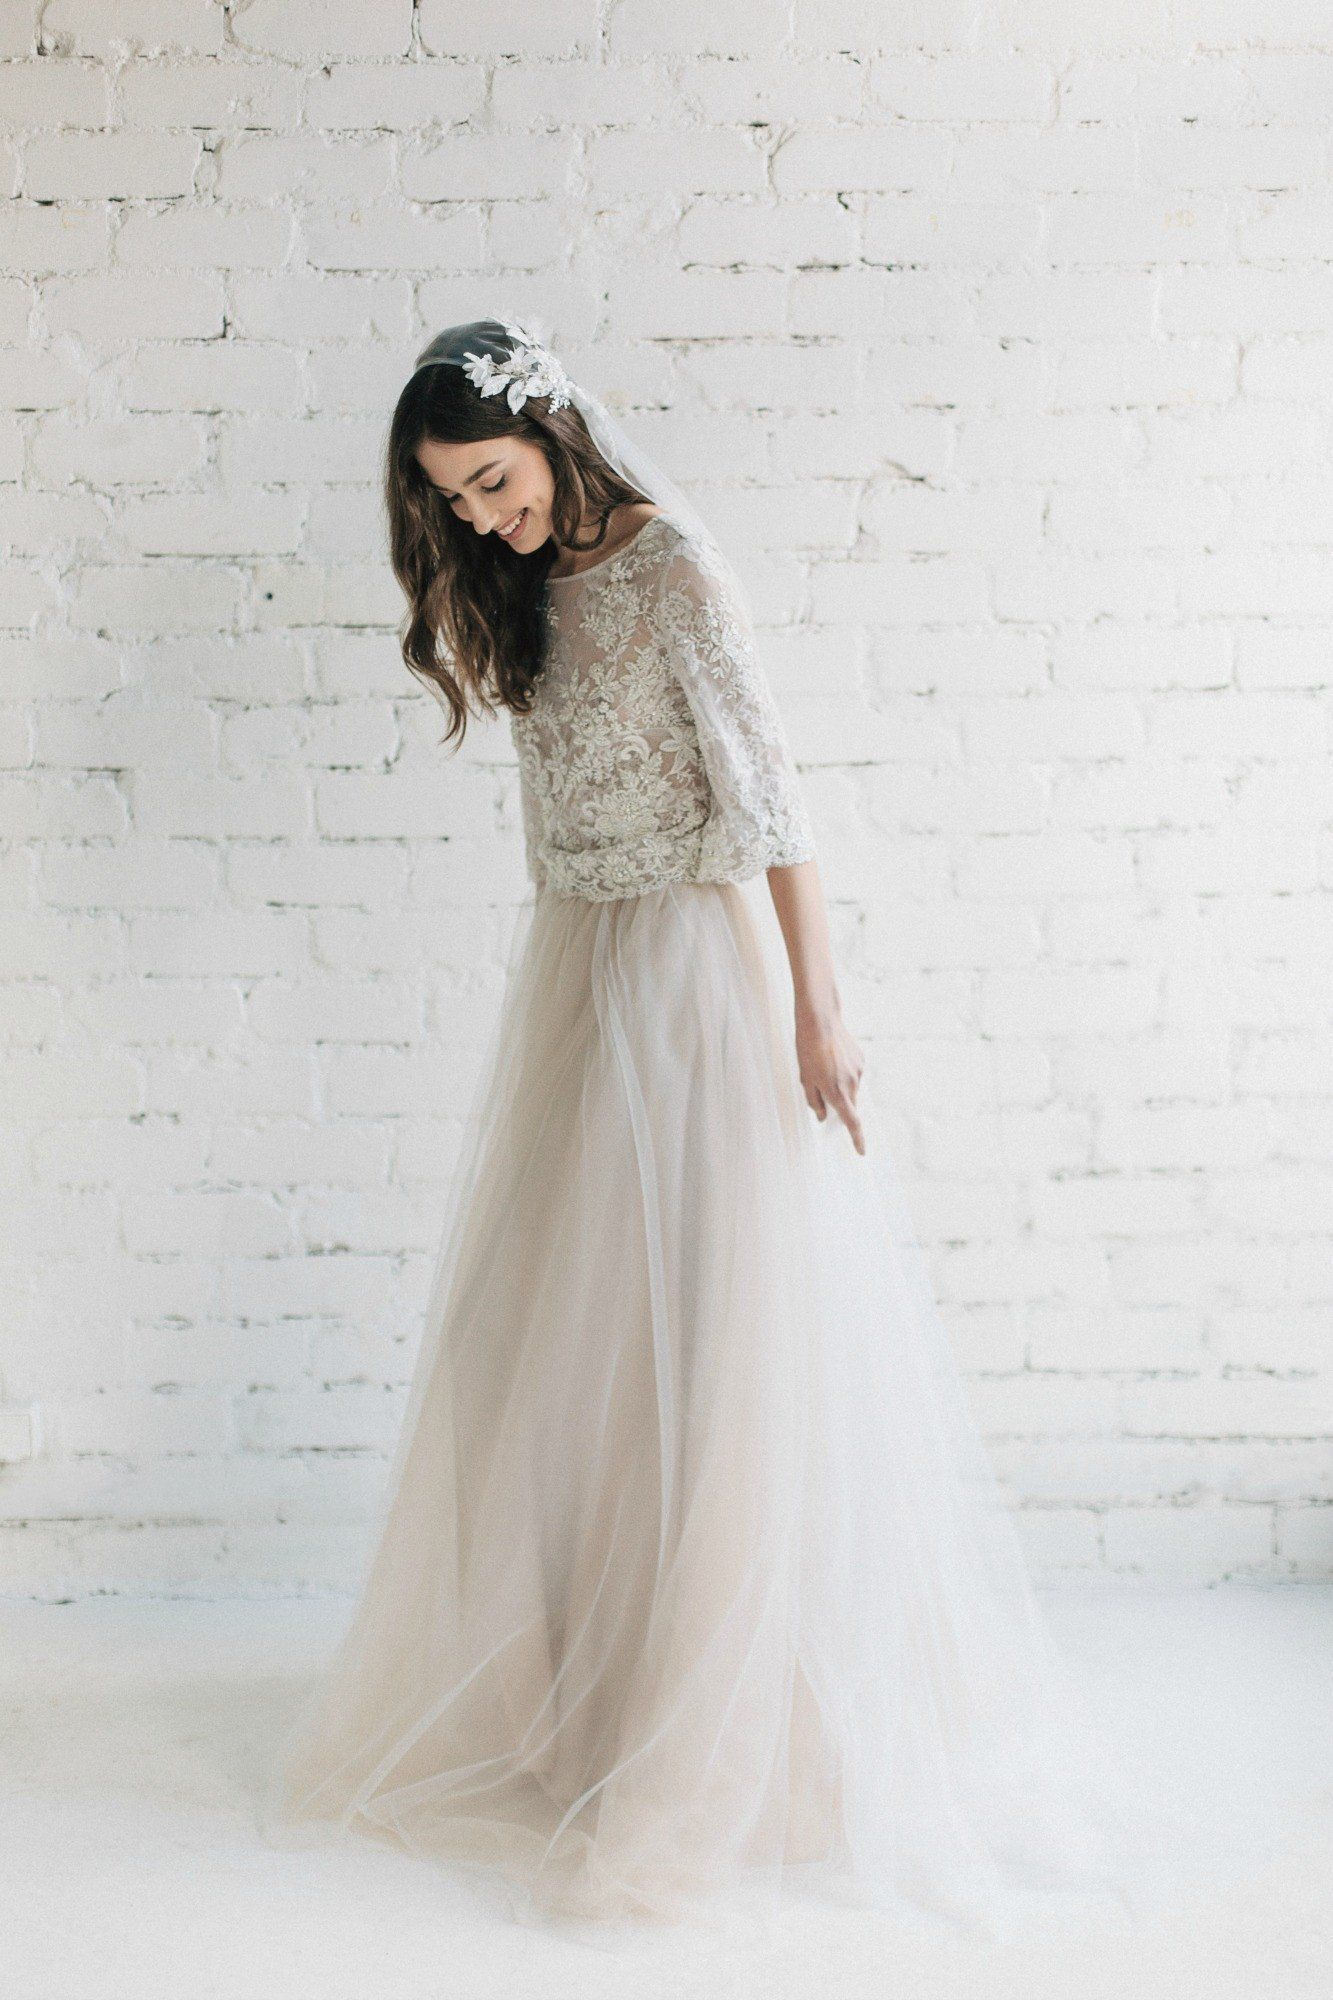 Courthouse wedding dress plus size  Lacey wedding dress with transparent accents and a wide flowy skirt